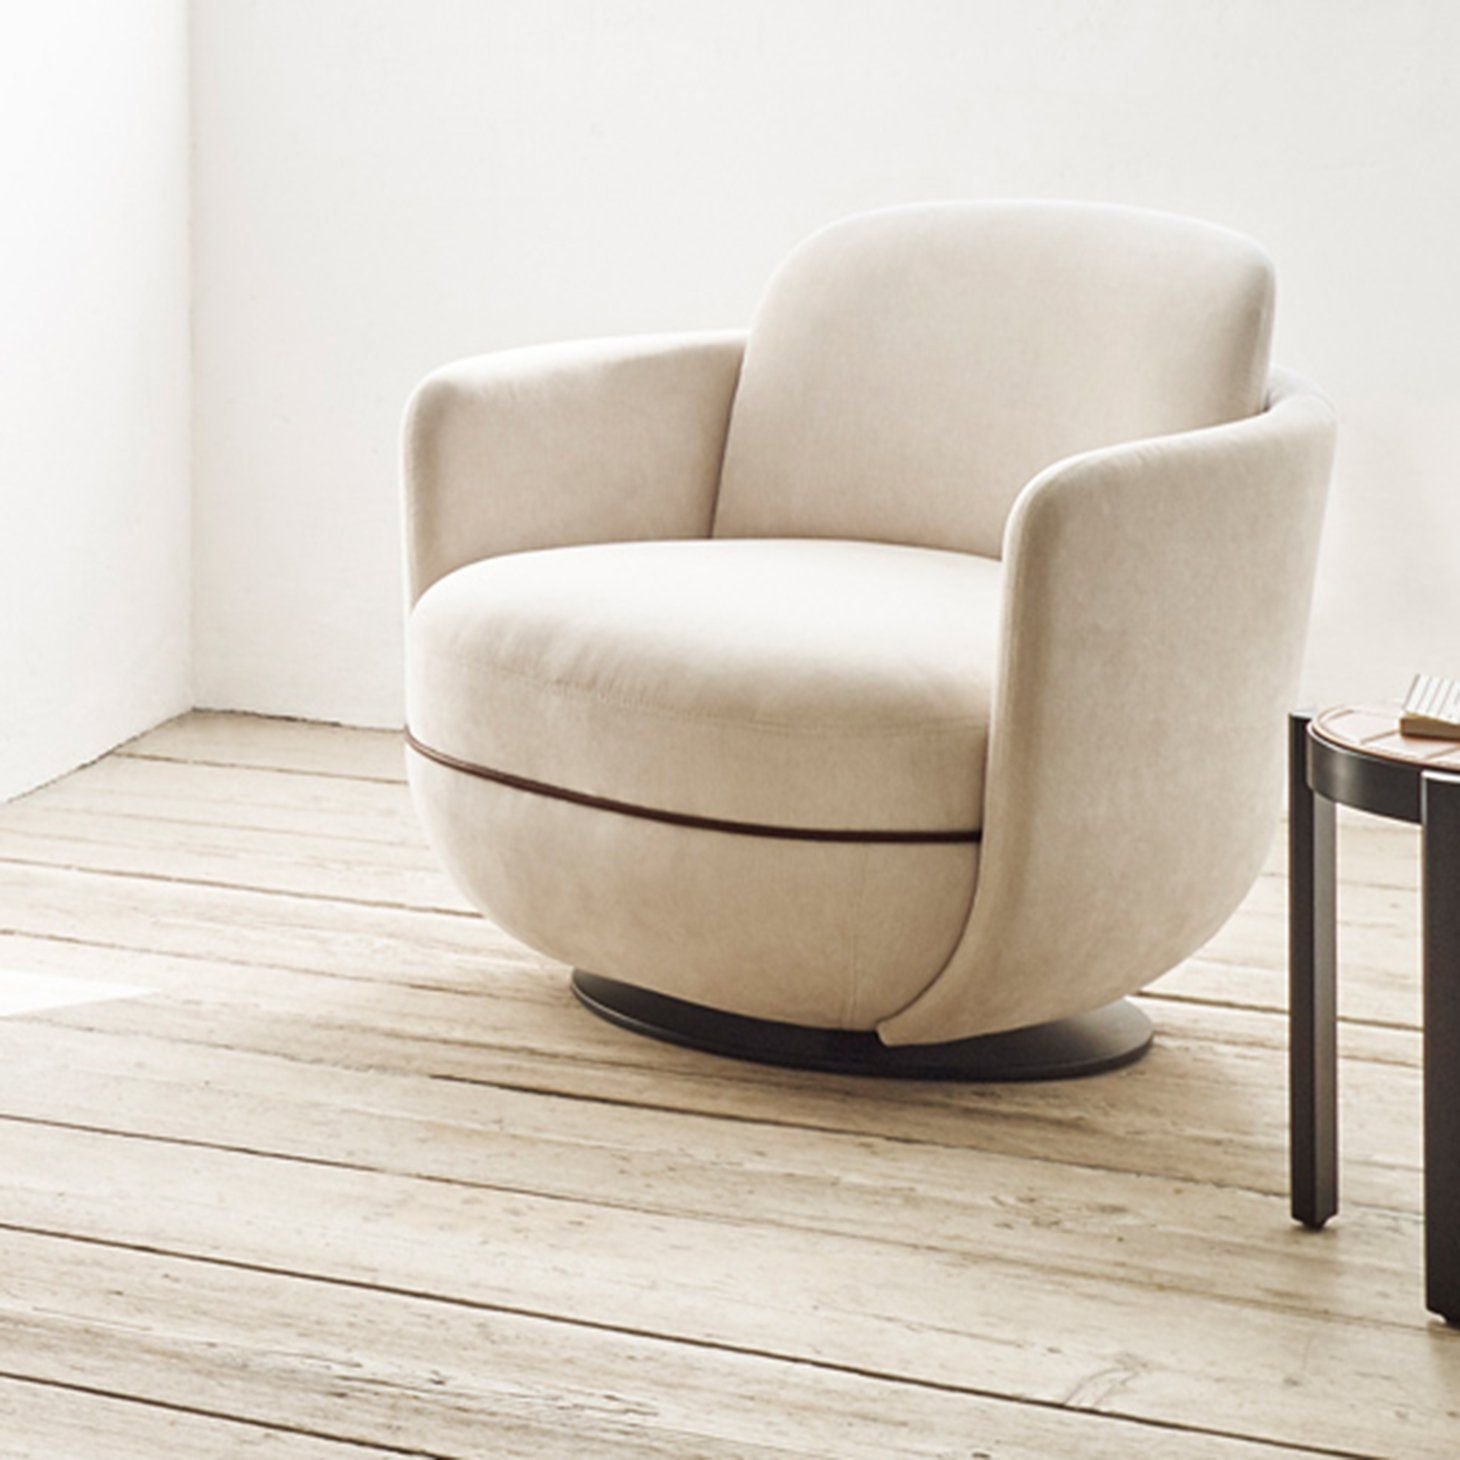 Miles Lounge Chair Lounge Chairs By Sebastian Herkner Avenue